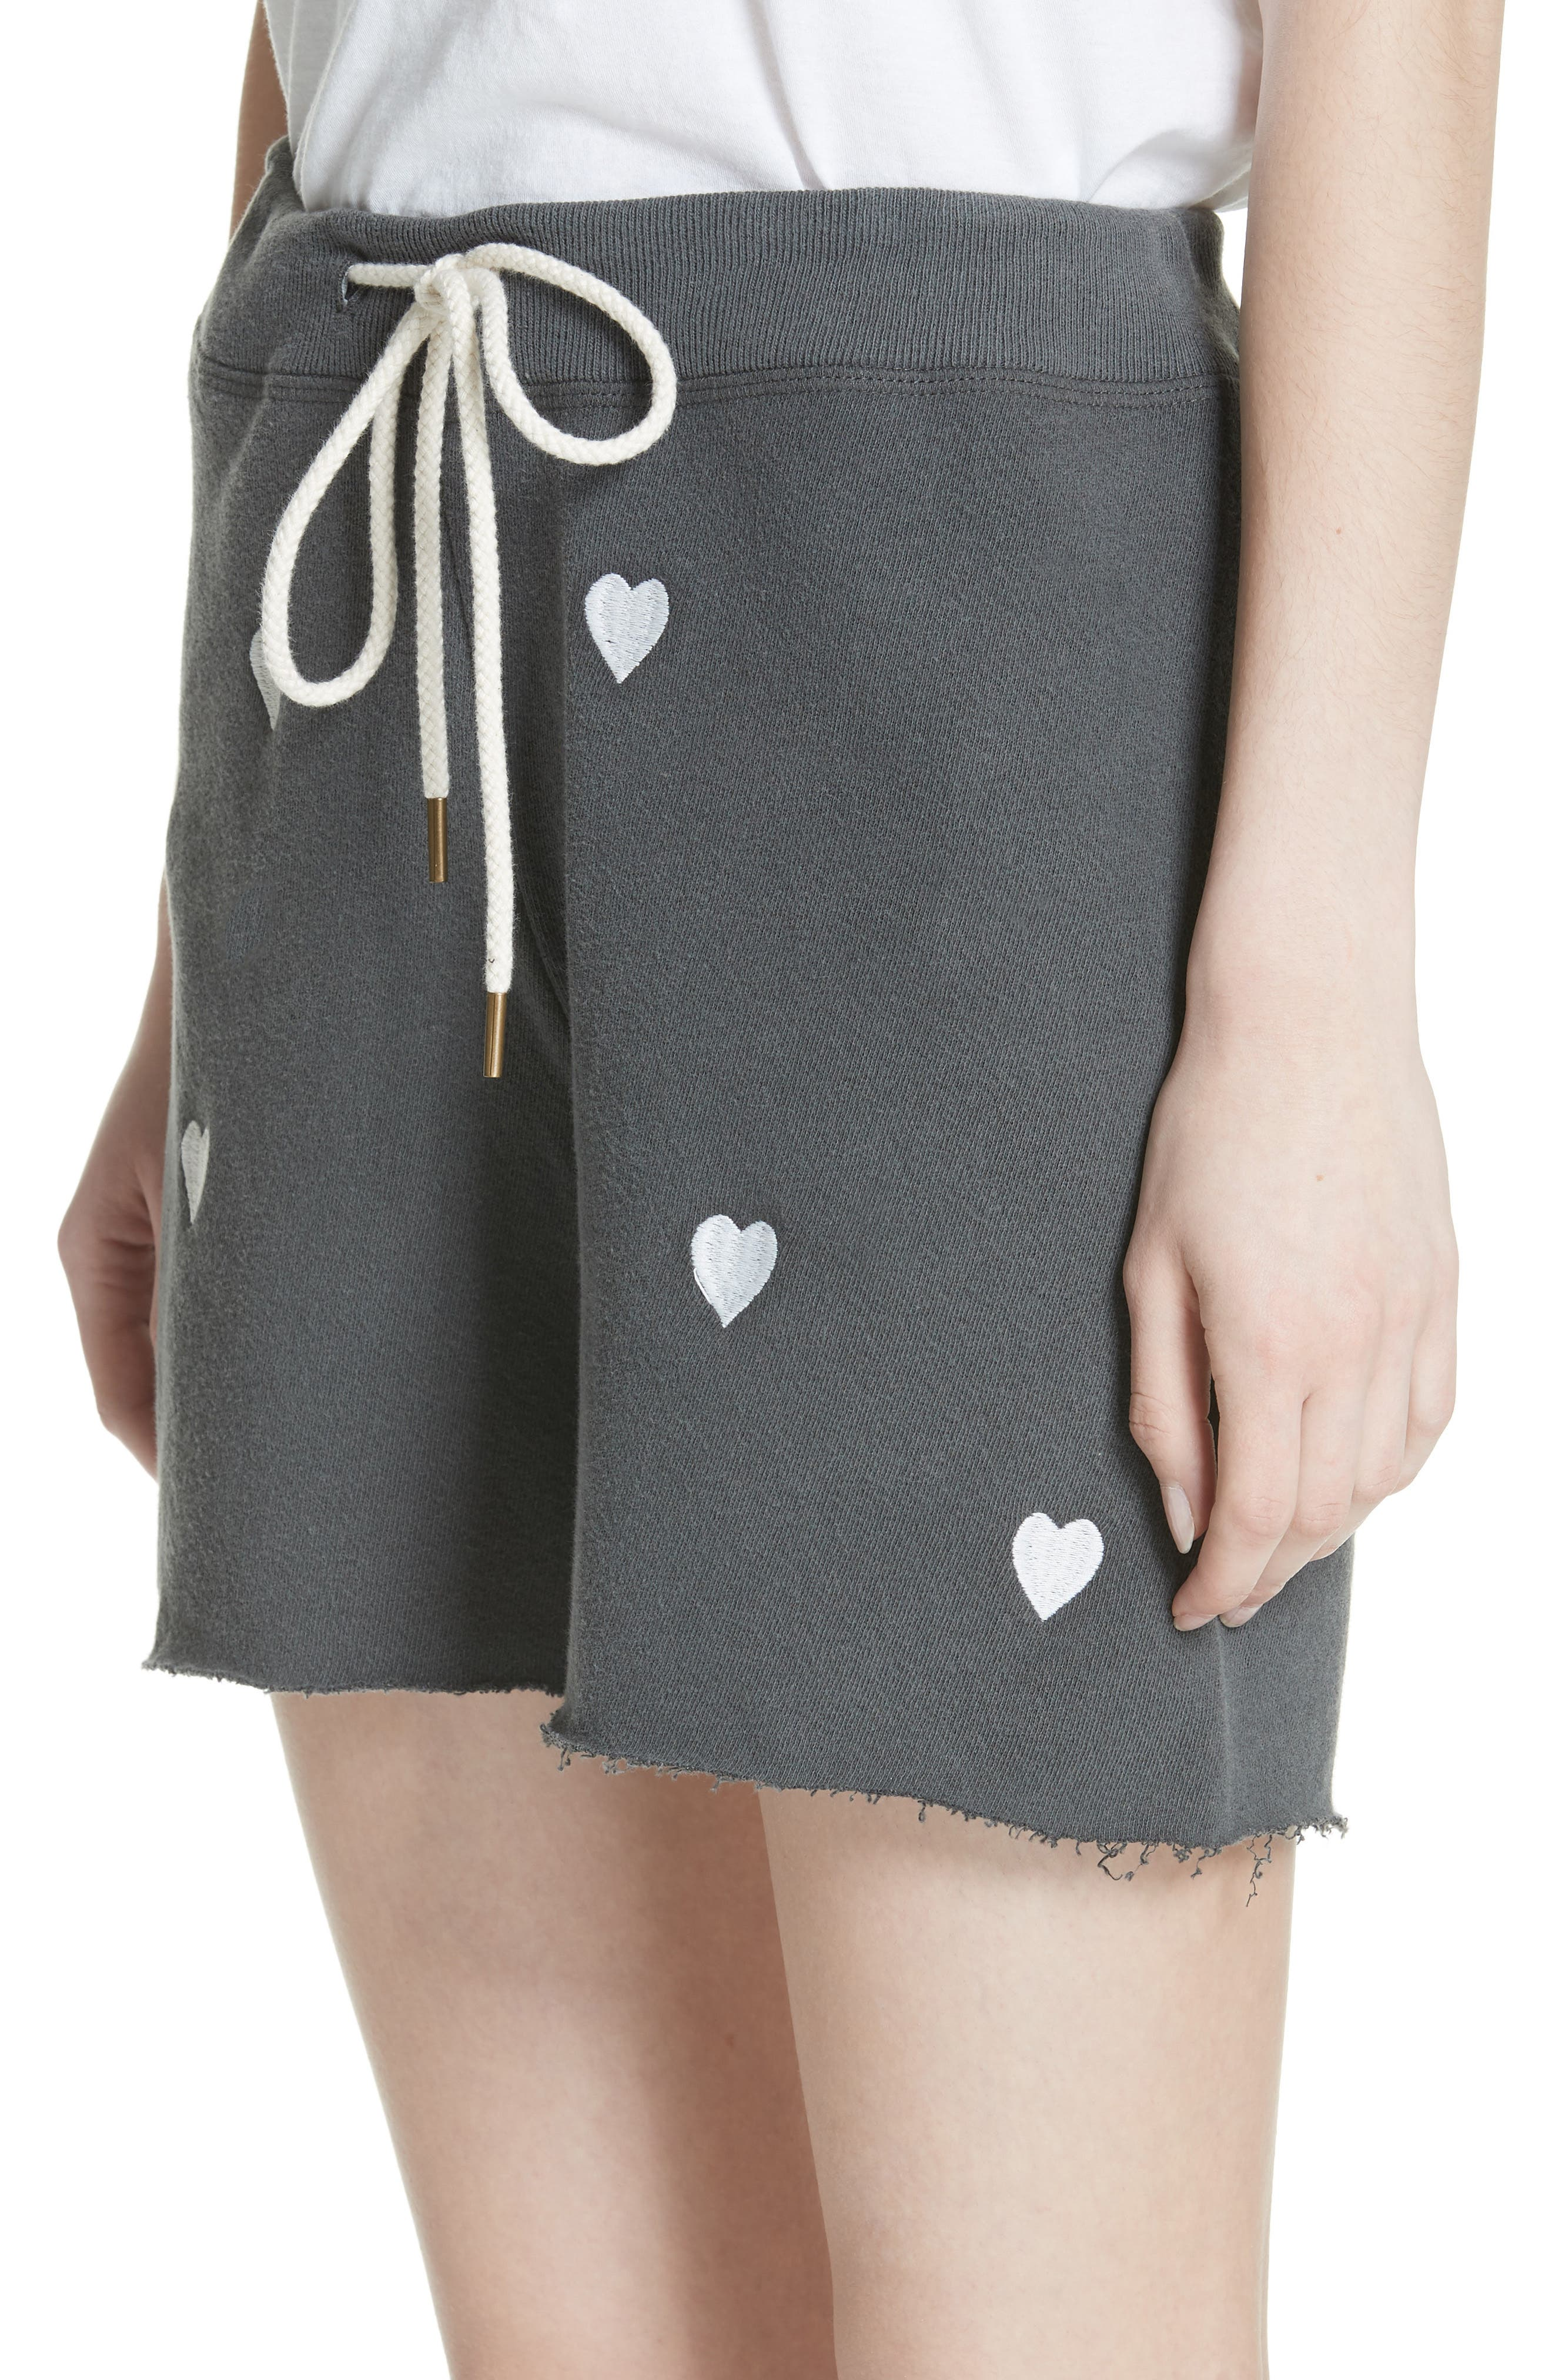 The Sweat Shorts,                             Alternate thumbnail 4, color,                             Washed Black/ White Hearts